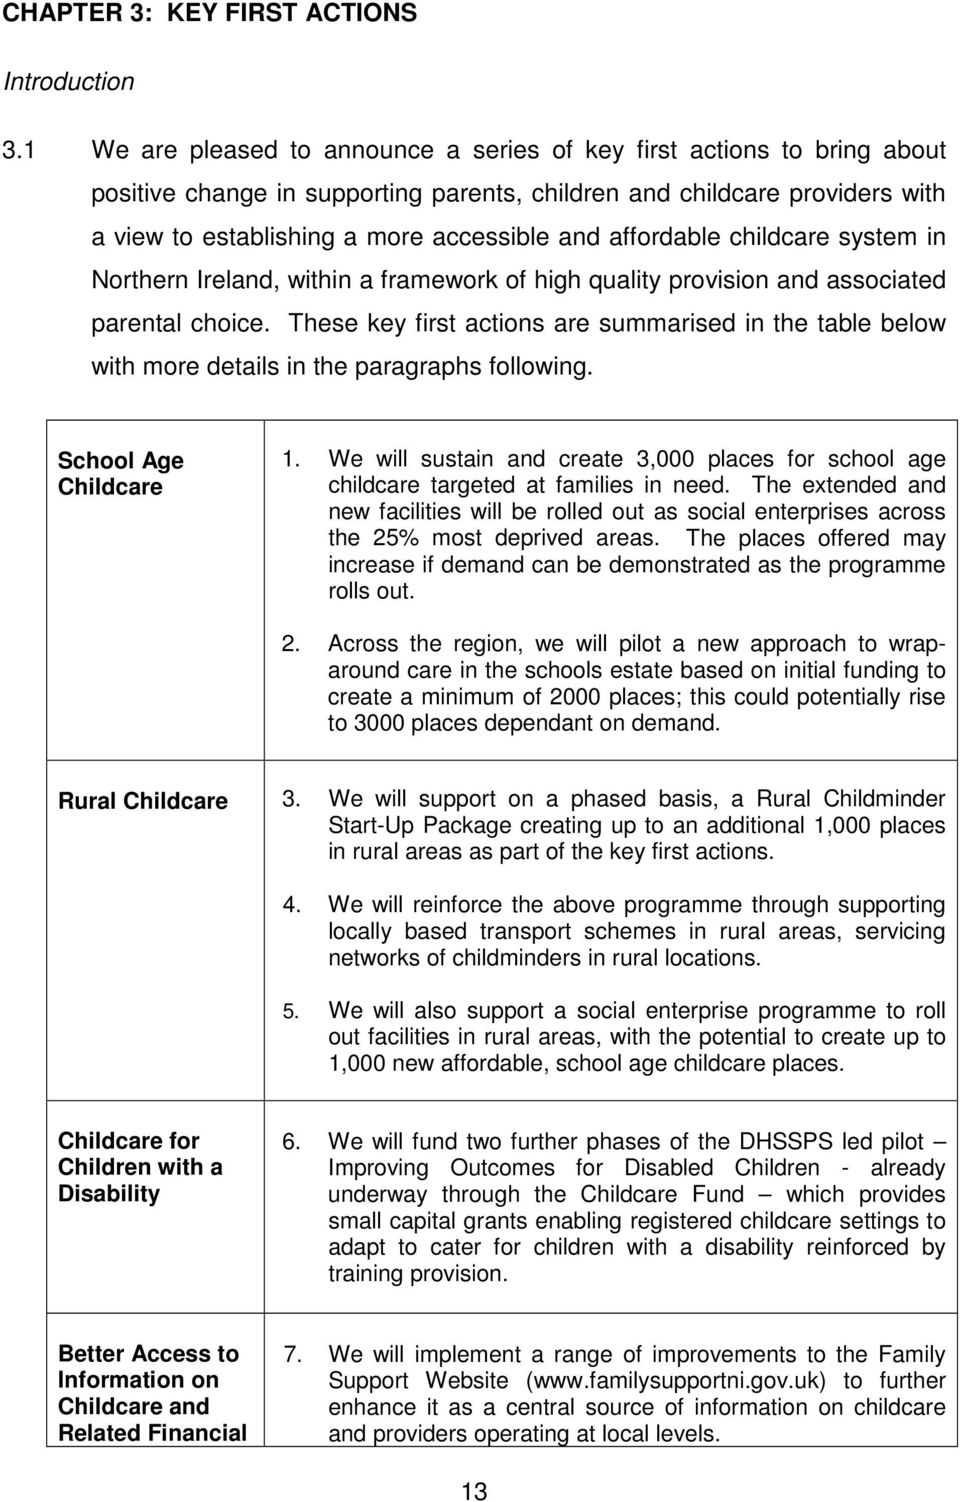 affordable childcare system in Northern Ireland, within a framework of high quality provision and associated parental choice.